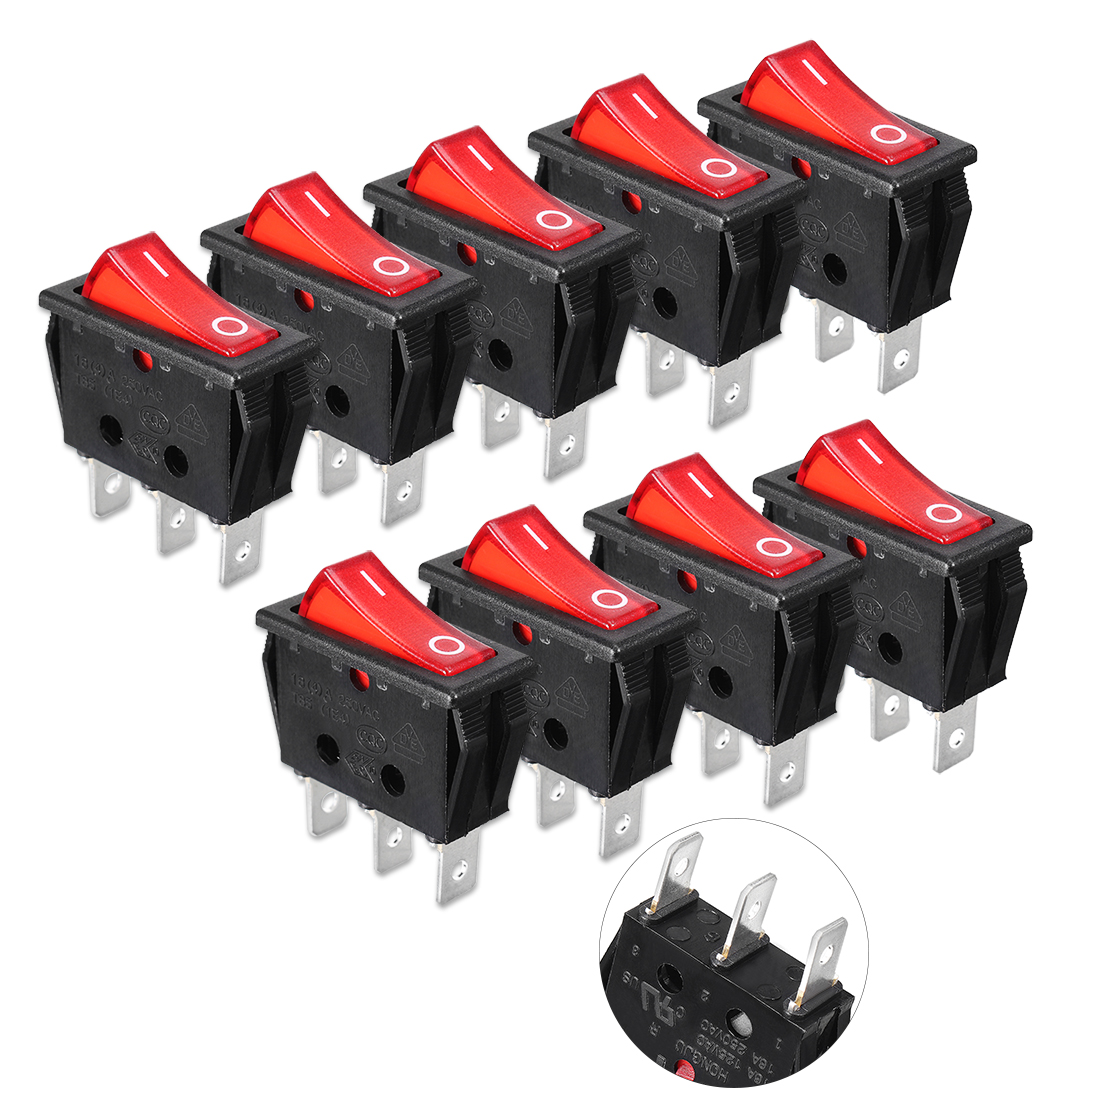 9pcs AC 16A 250V Red Lamps ON-OFF 3-Pin SPST Latch Rocker Boat Switch